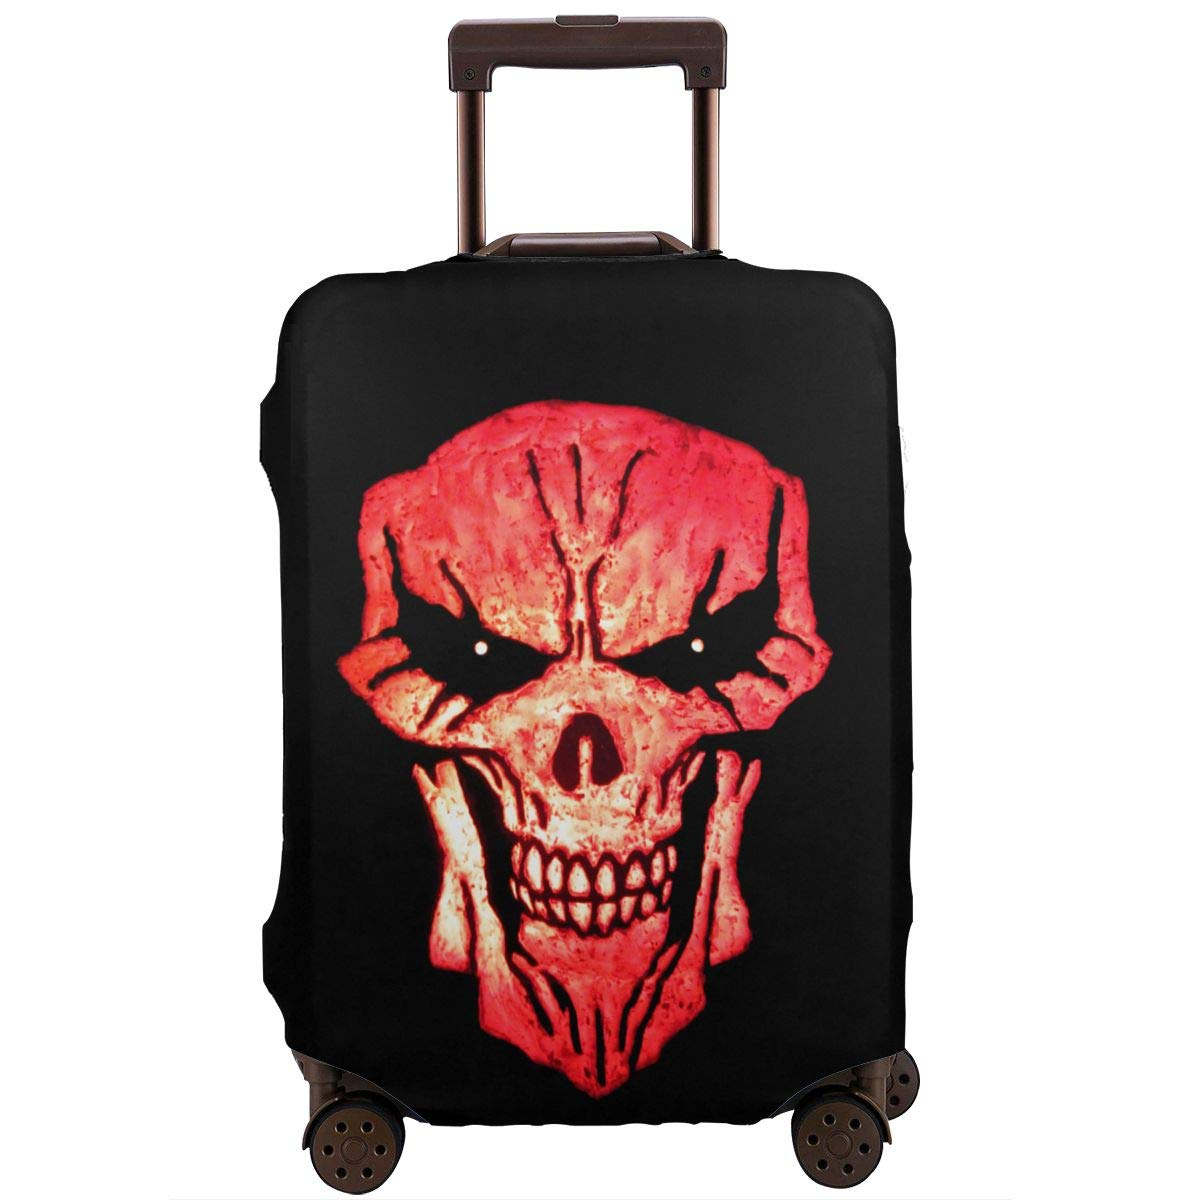 Skull Art Elastic Travel Luggage Cover,Double Print Fashion Washable Suitcase Protector Cover Fits 18-32inch Luggage